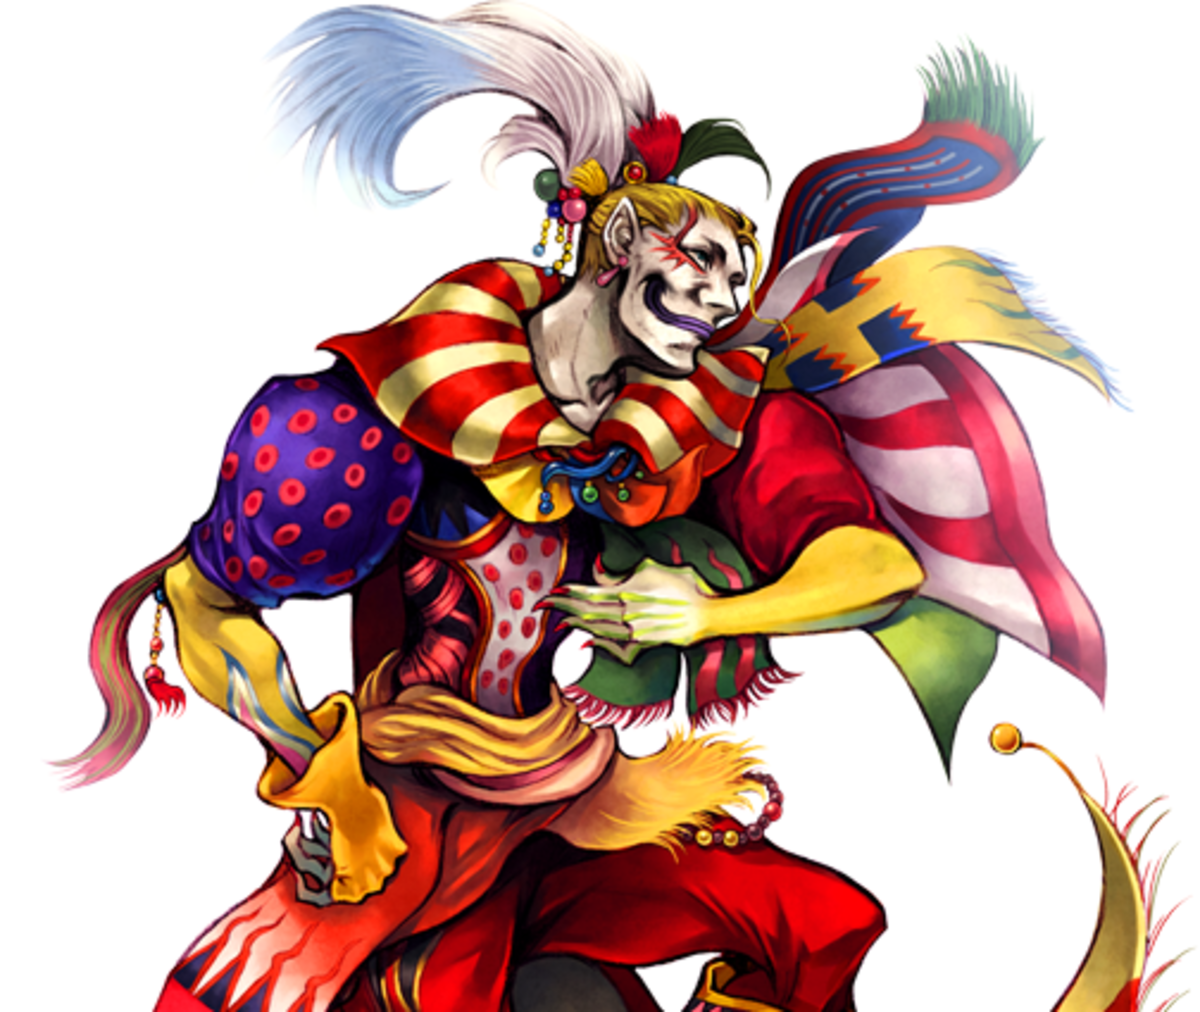 Kefka in Dissidia 012